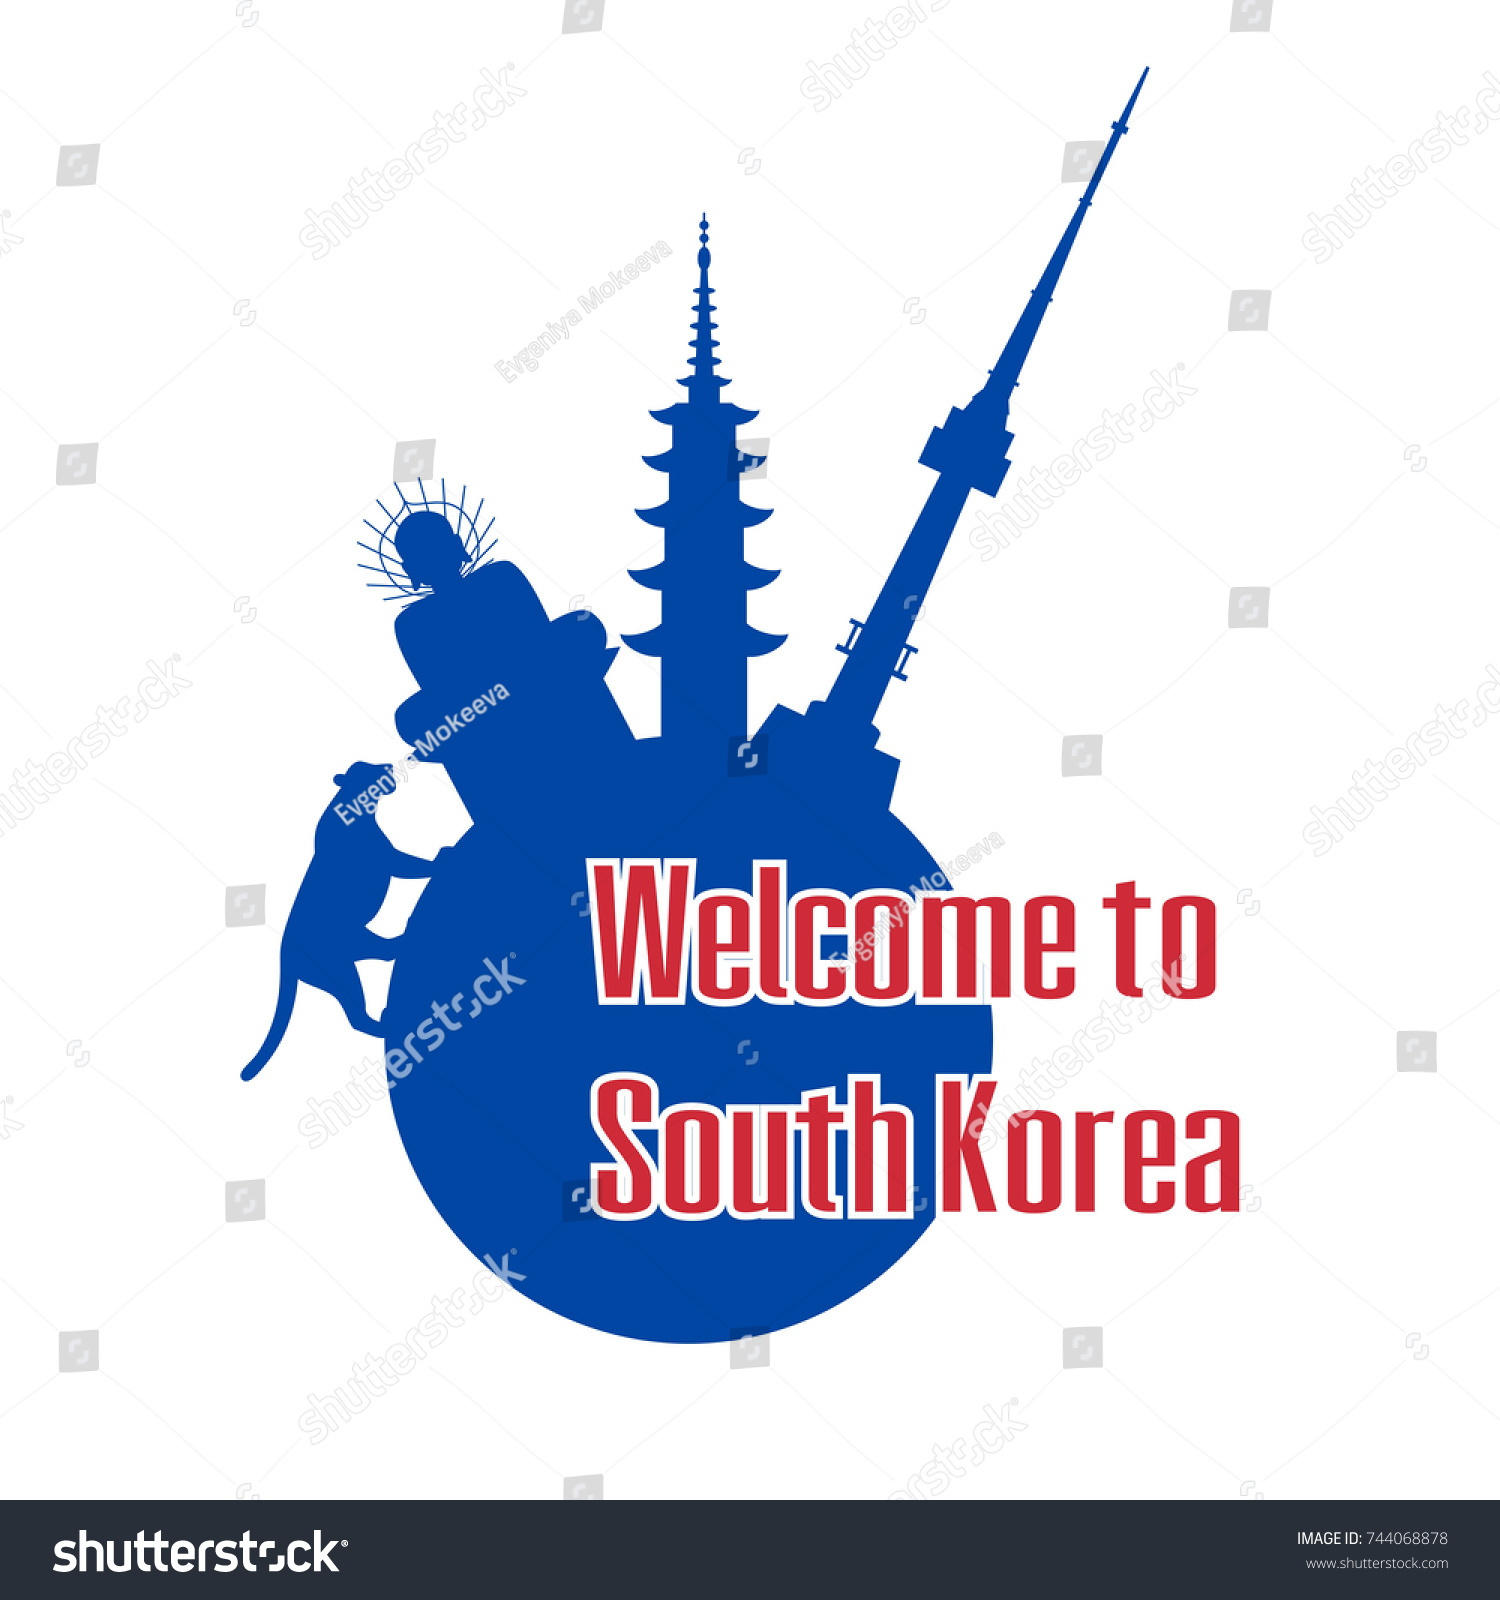 Welcome south korea poster symbols south stock vector 744068878 welcome to south korea poster with symbols of south korea vector illustration biocorpaavc Gallery